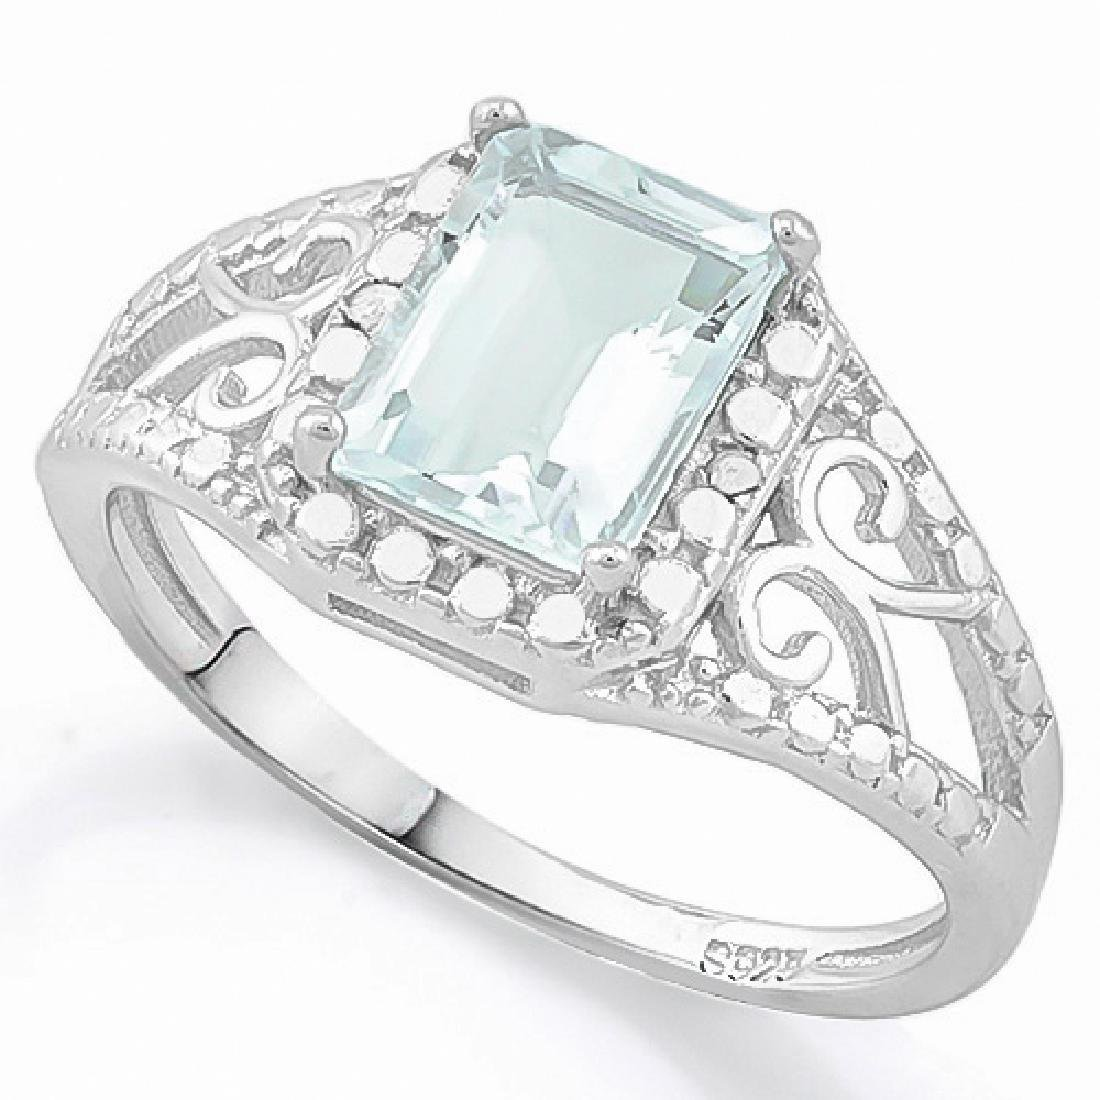 1 2/3 CARAT AQUAMARINE & GENUINE DIAMONDS 925 STERLING